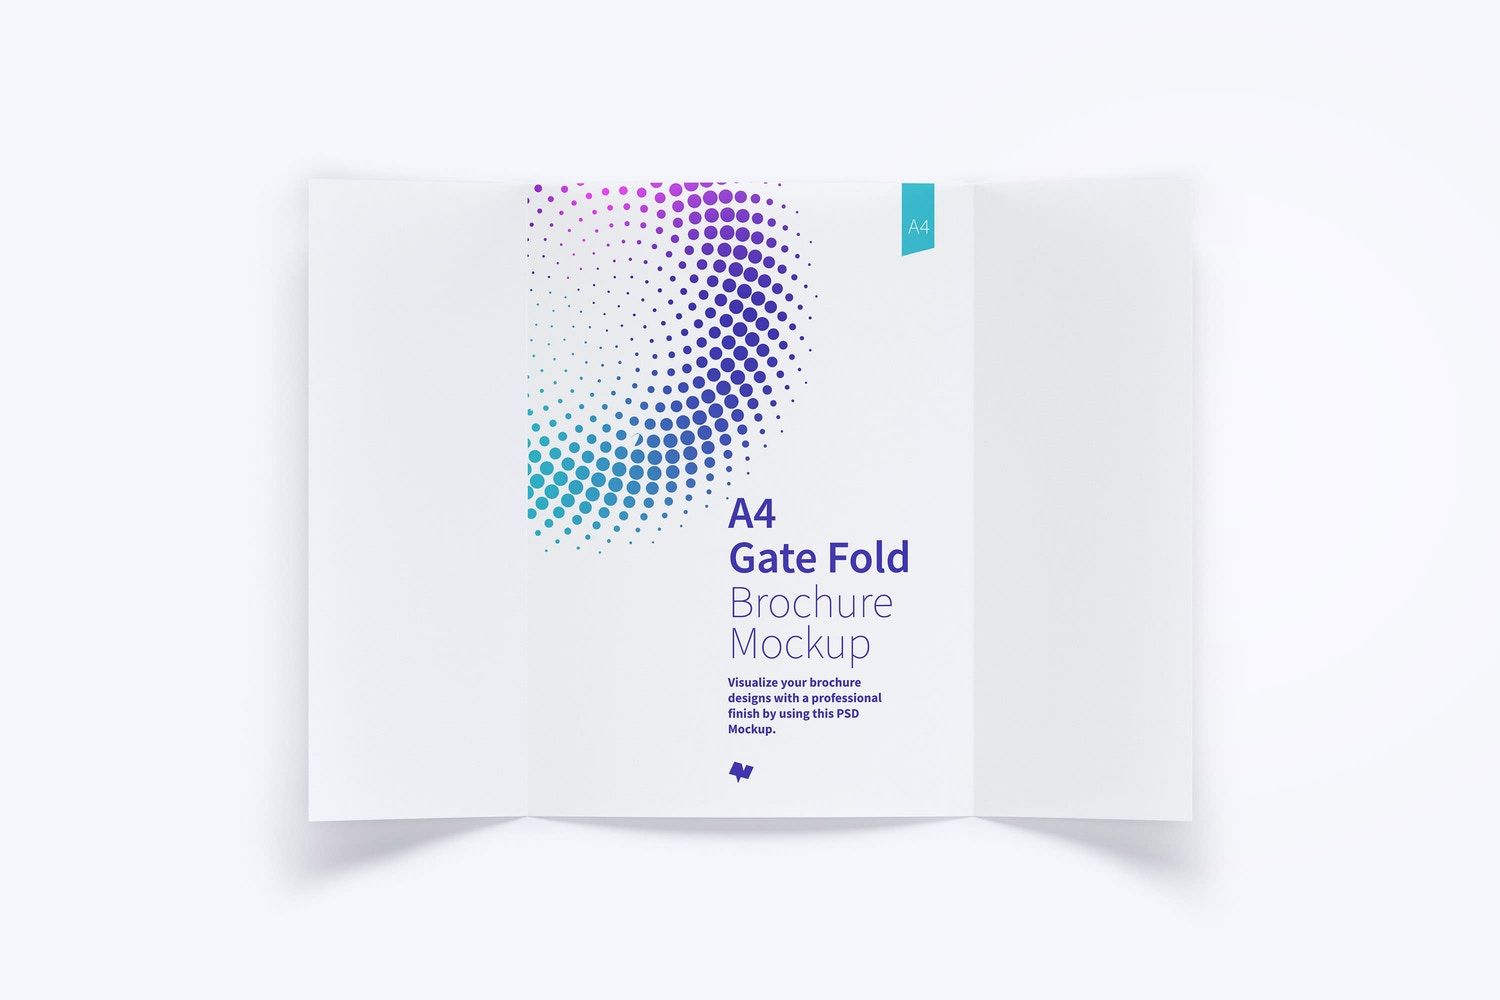 A4 Gate Fold Brochure Mockup 01 by Original Mockups on Original Mockups